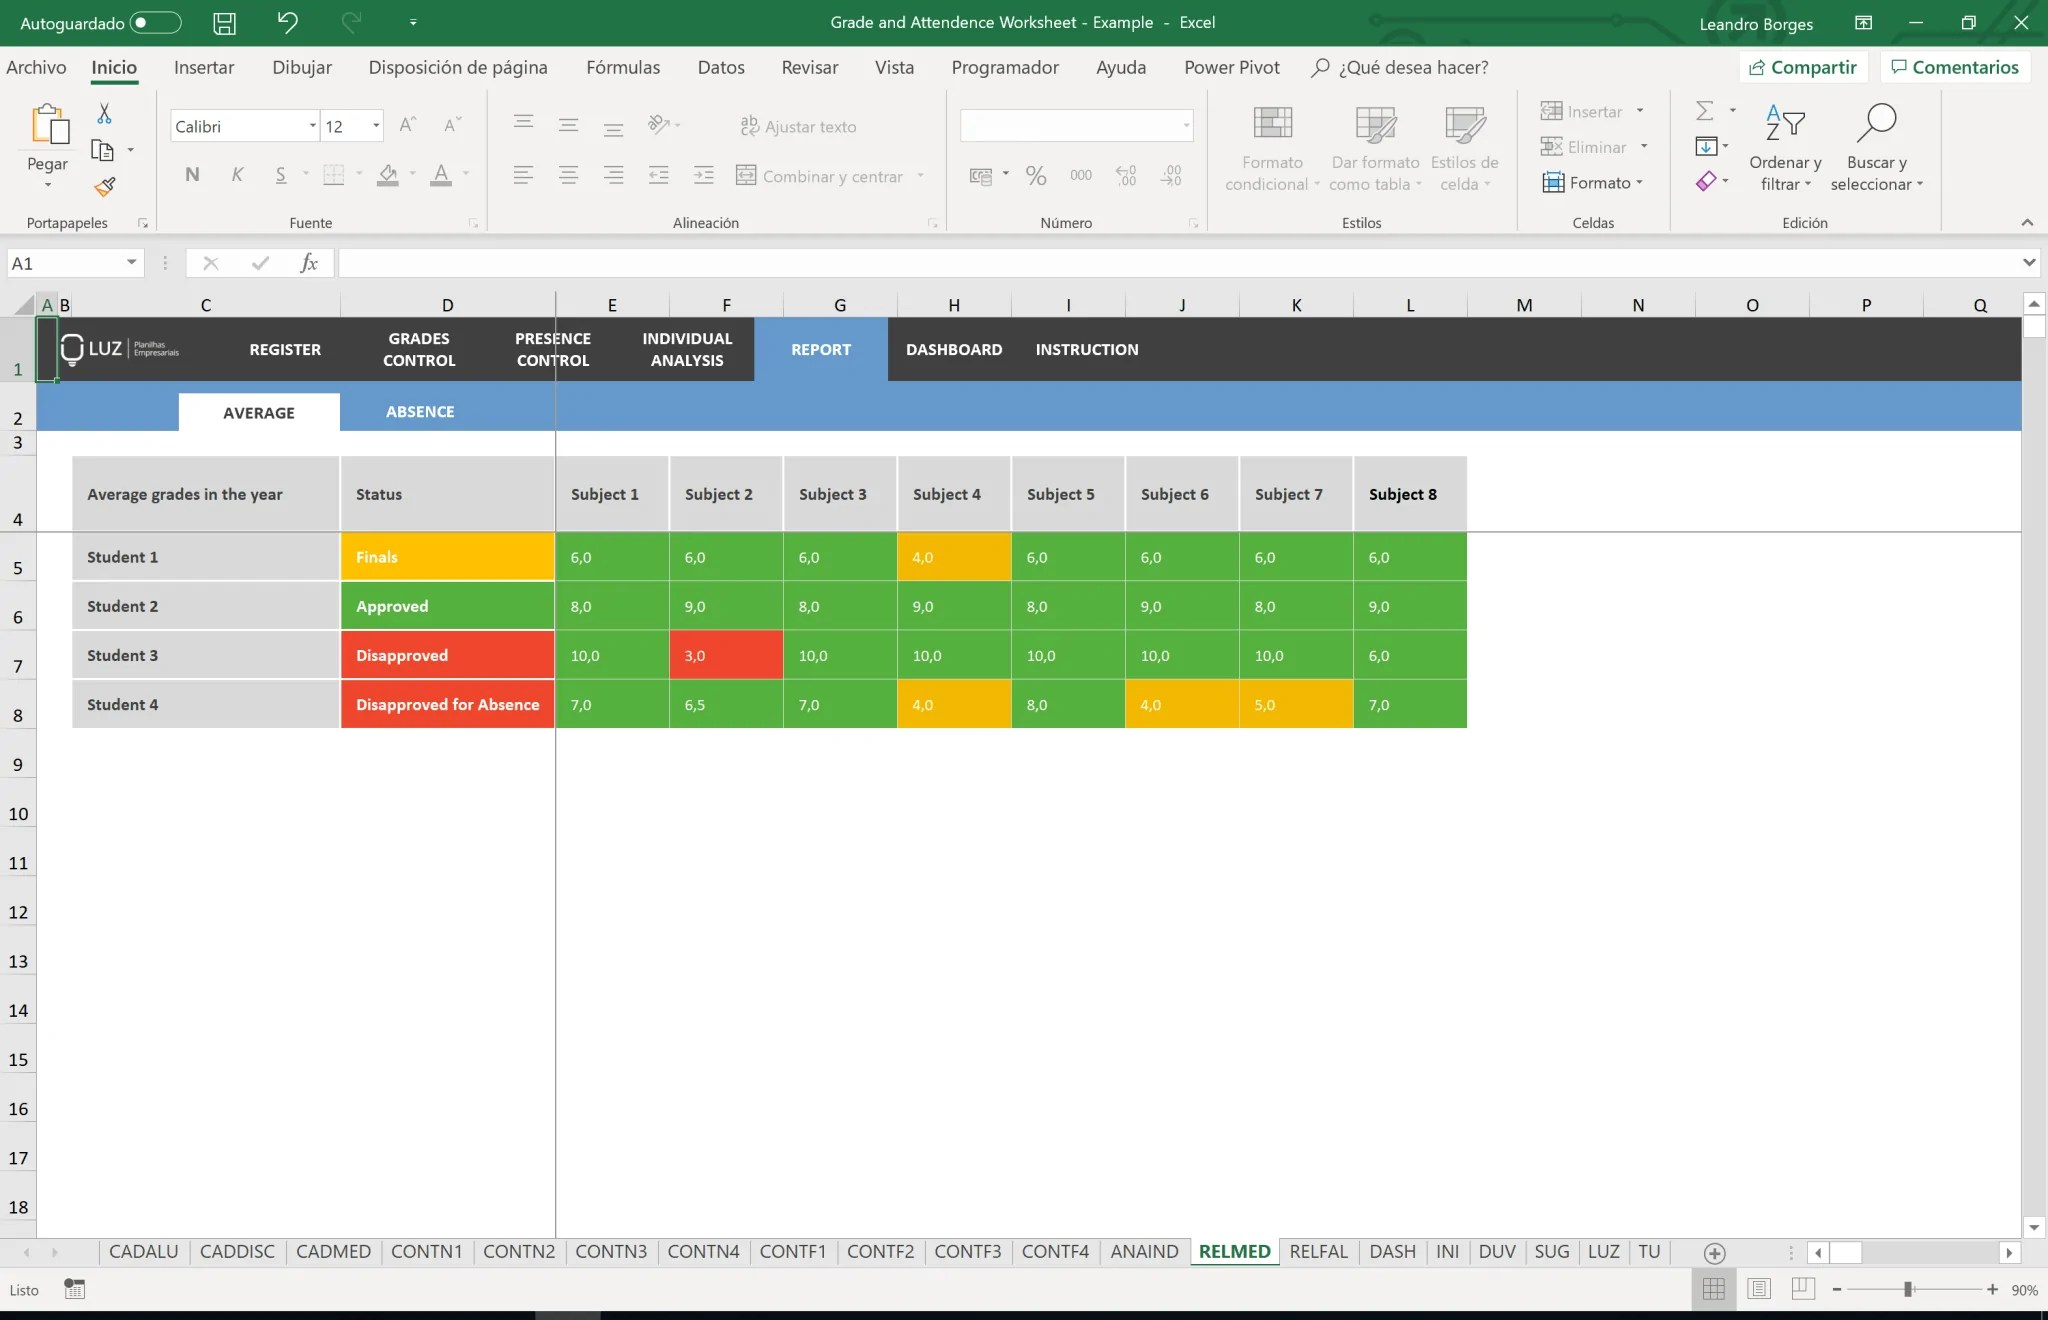 small resolution of Grades and Attendance Excel Worksheet for Schools - LUZ Templates